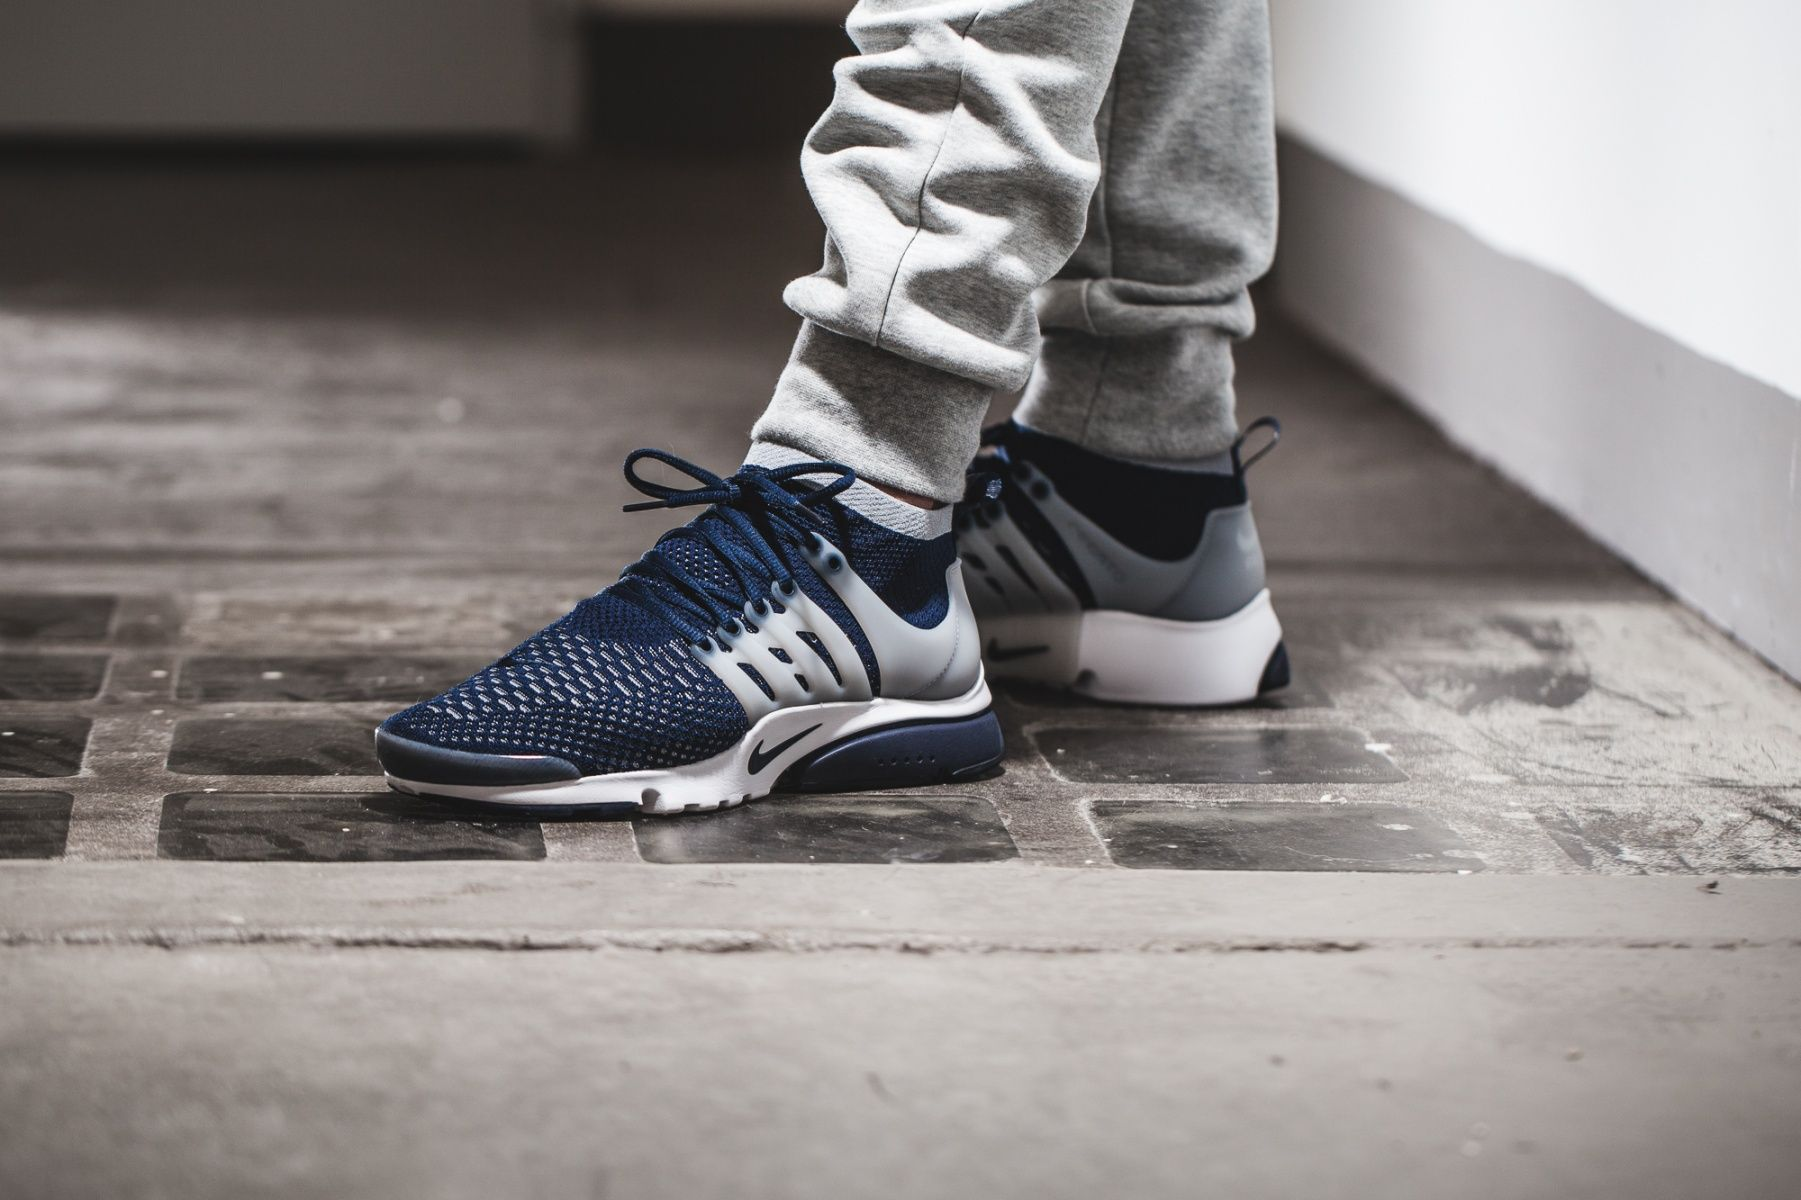 Best Drop Shipping Nike Air Presto Ultra Flyknit Couple running shoes Black white